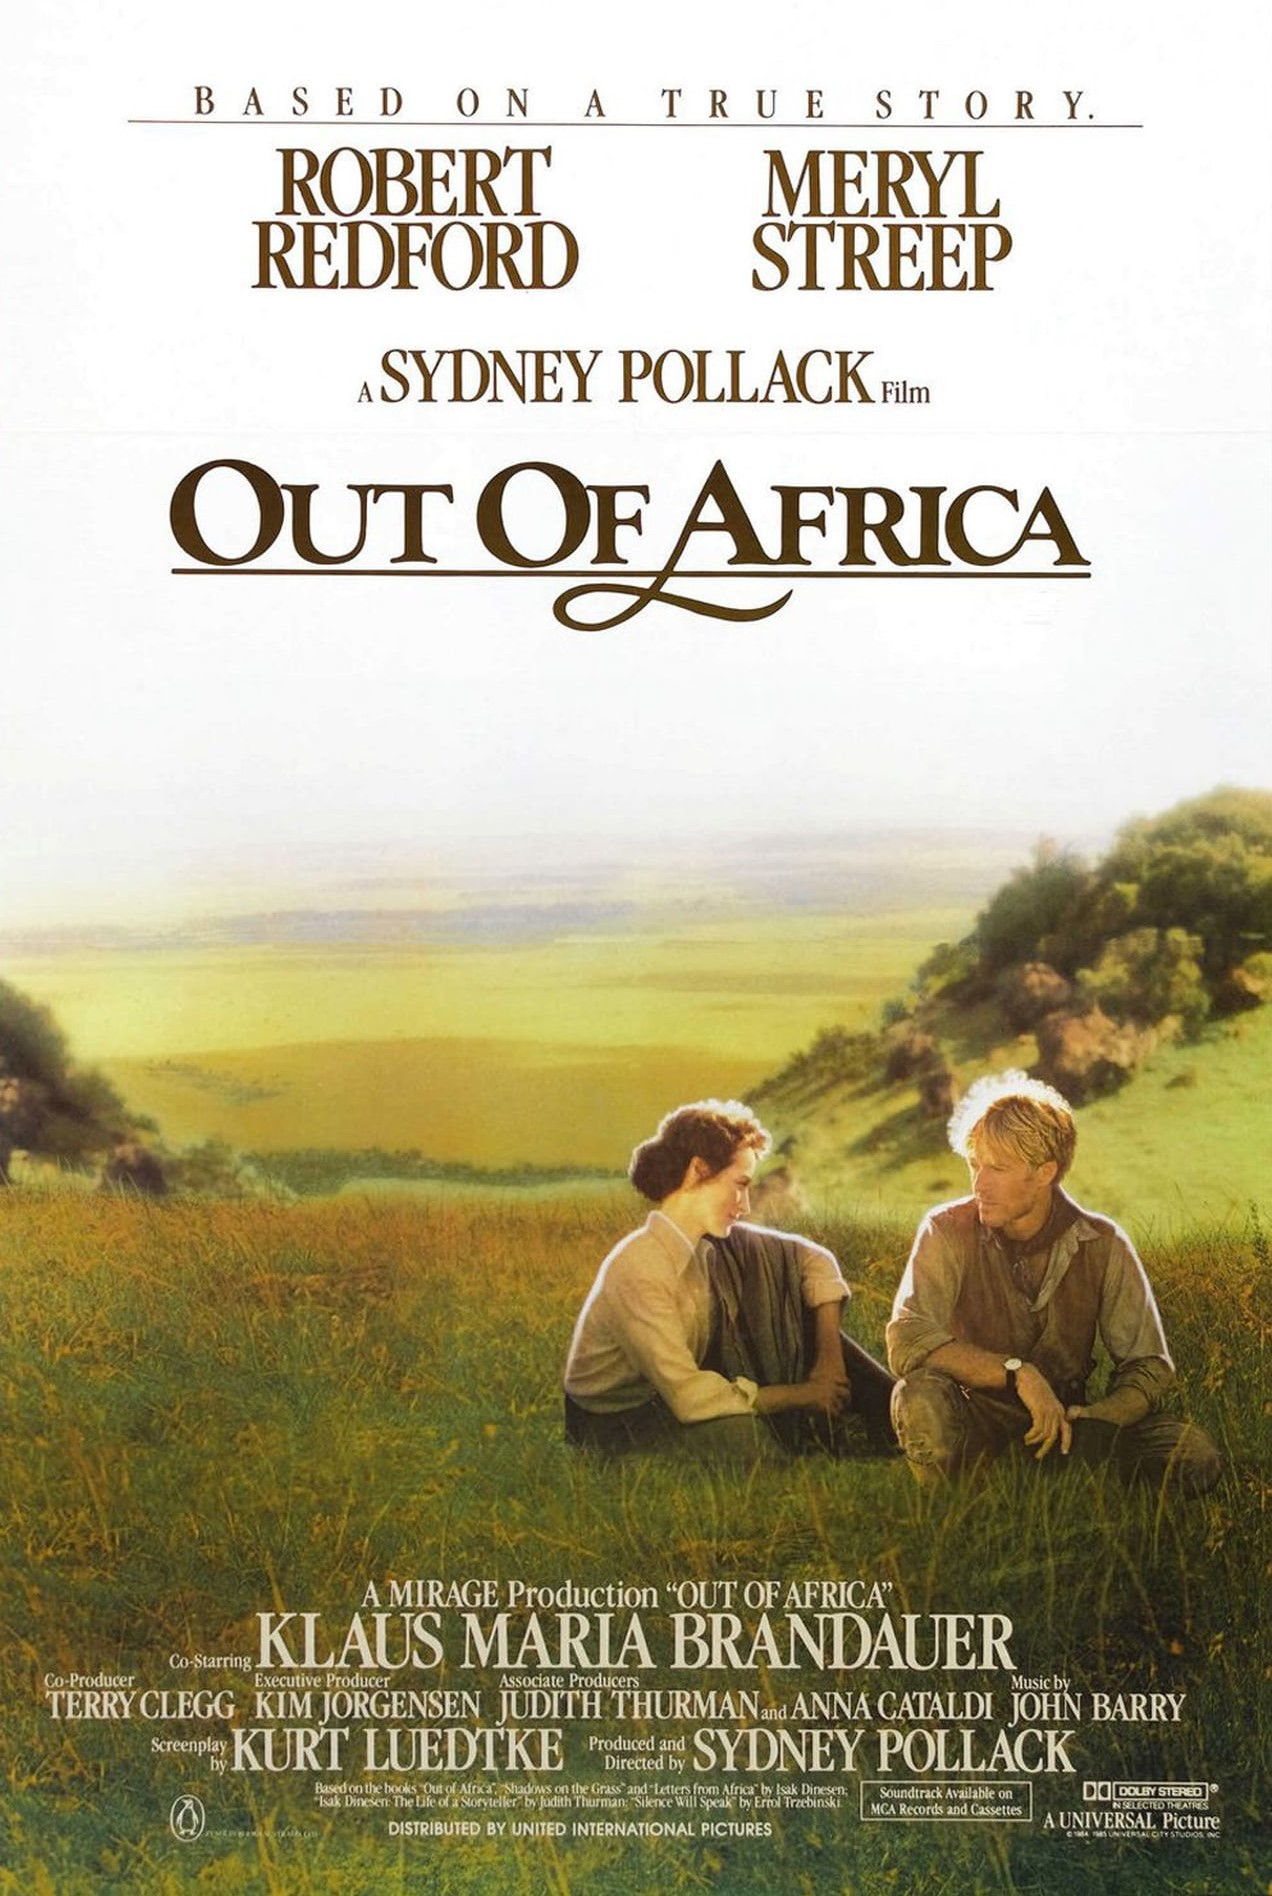 out of africa (1985) imdb Migration Out of Africa